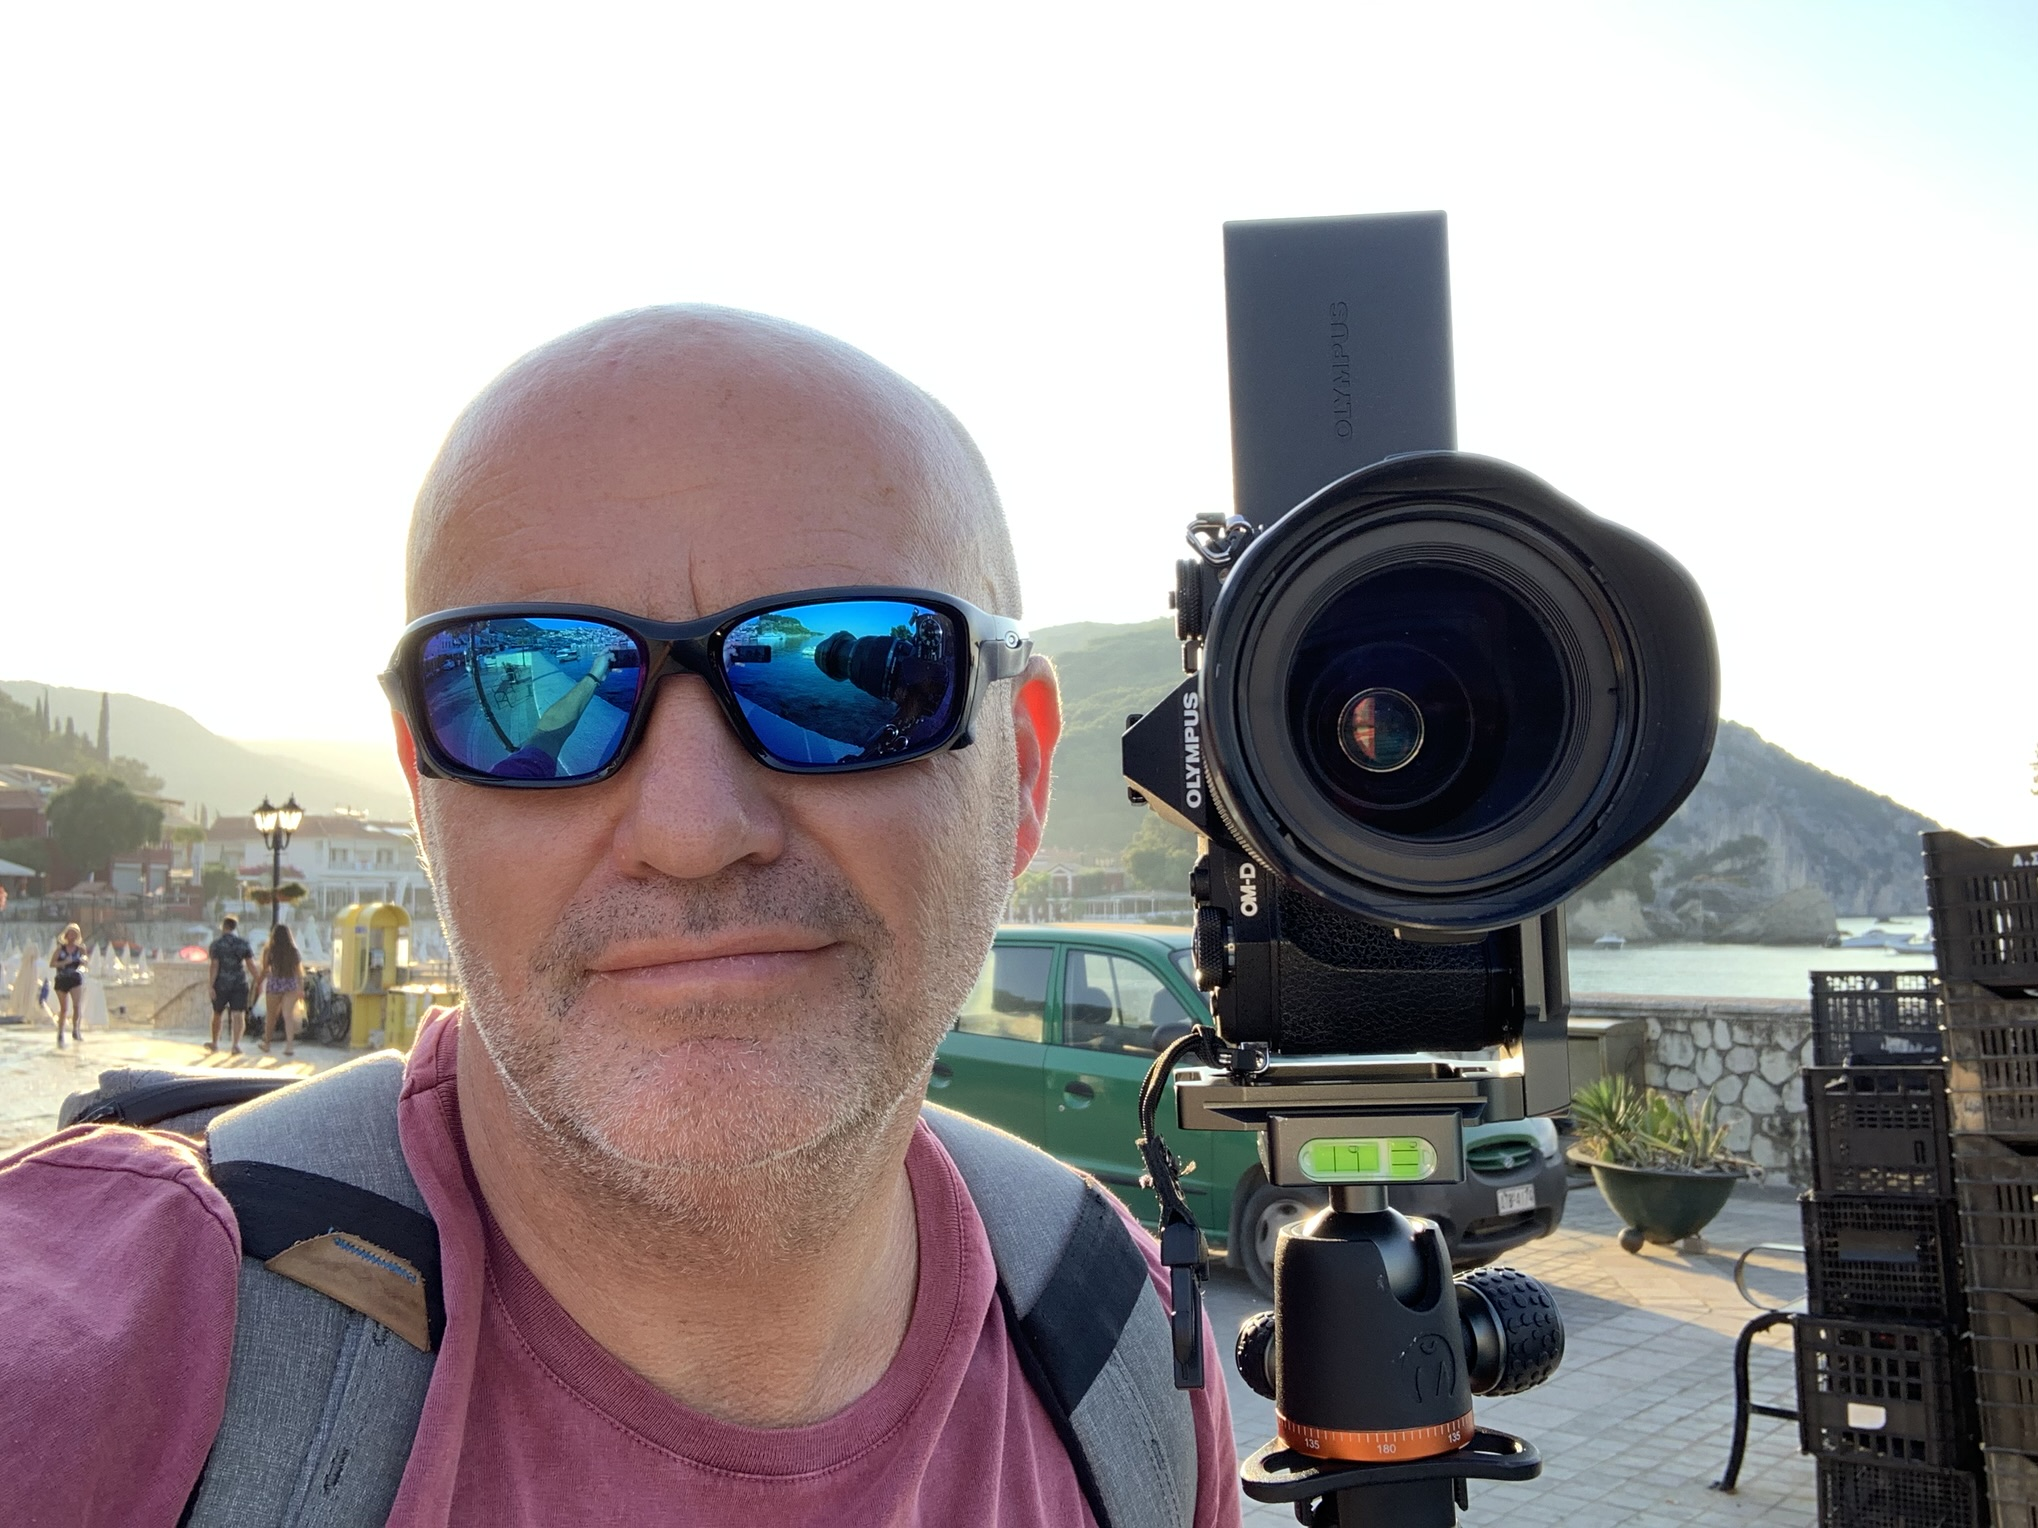 Me and my Olympus OM-D EM5 Mk 2 on location in Parga